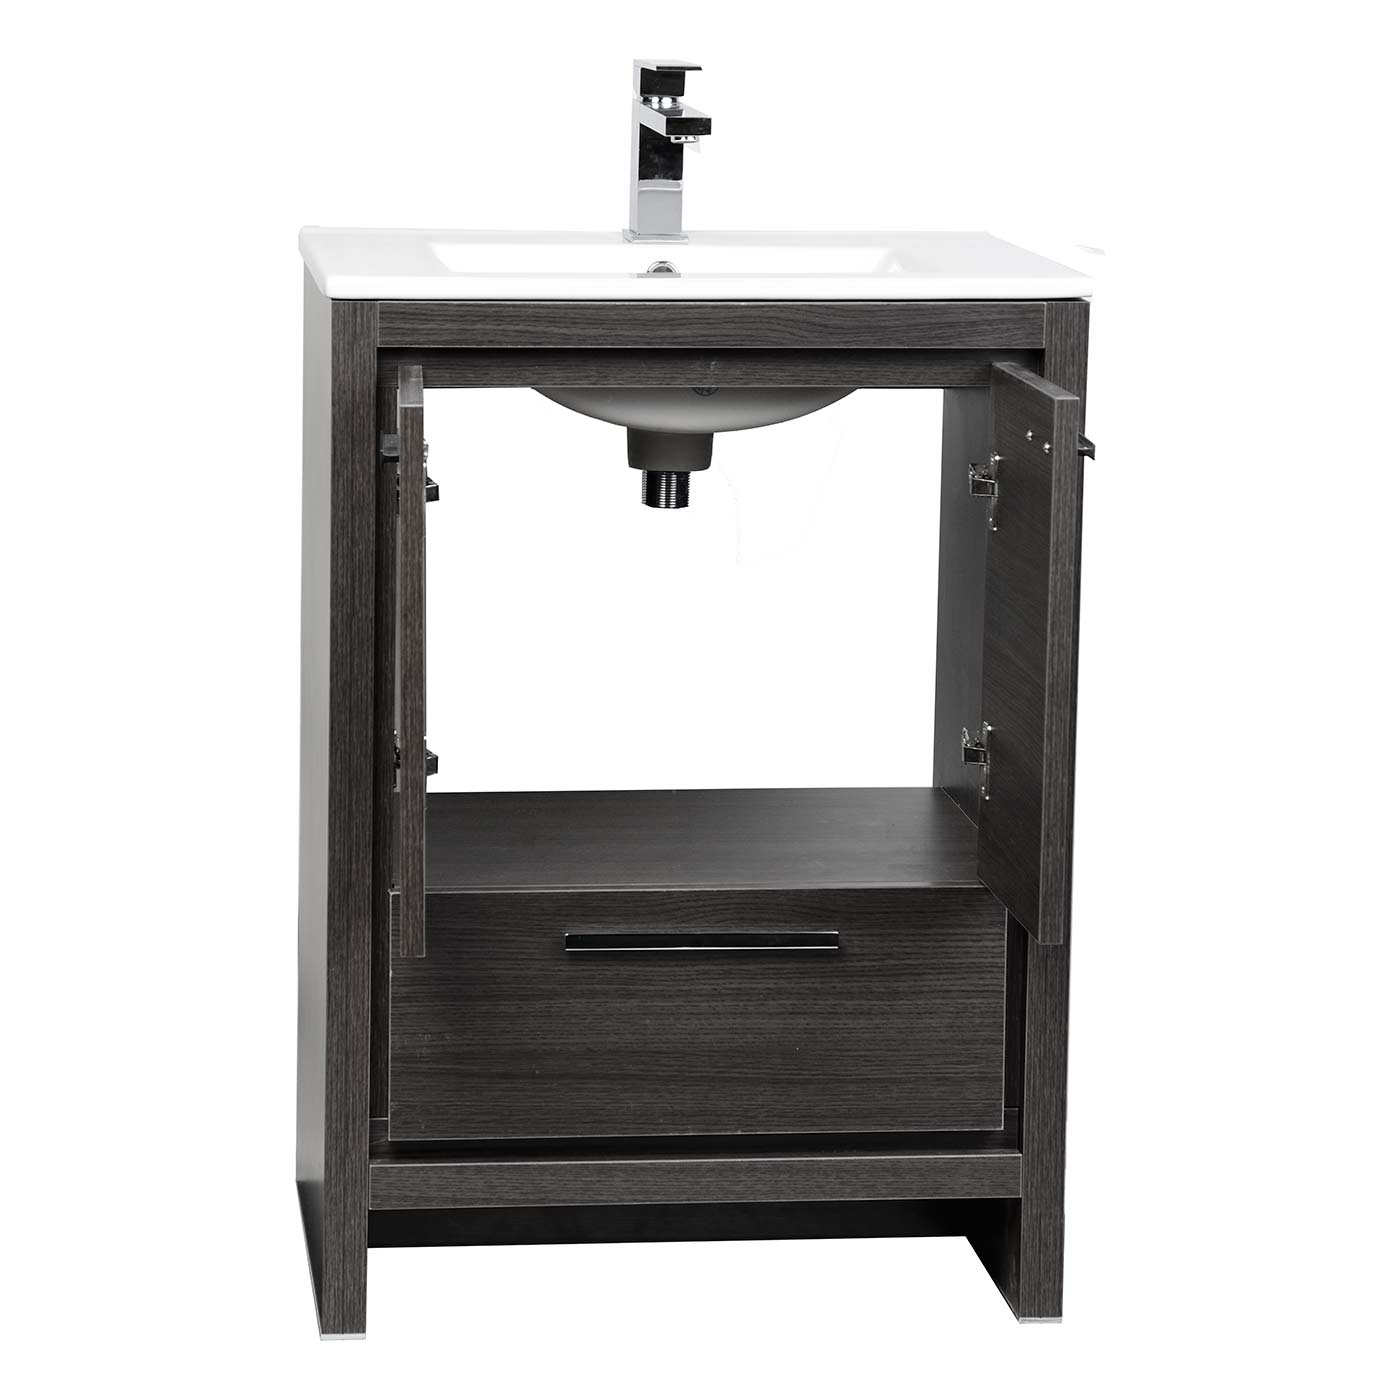 CBI Enna 23 5 inch Grey Oak Modern Bathroom Vanity TN LA600 GO. Bathroom Vanities Bay Area